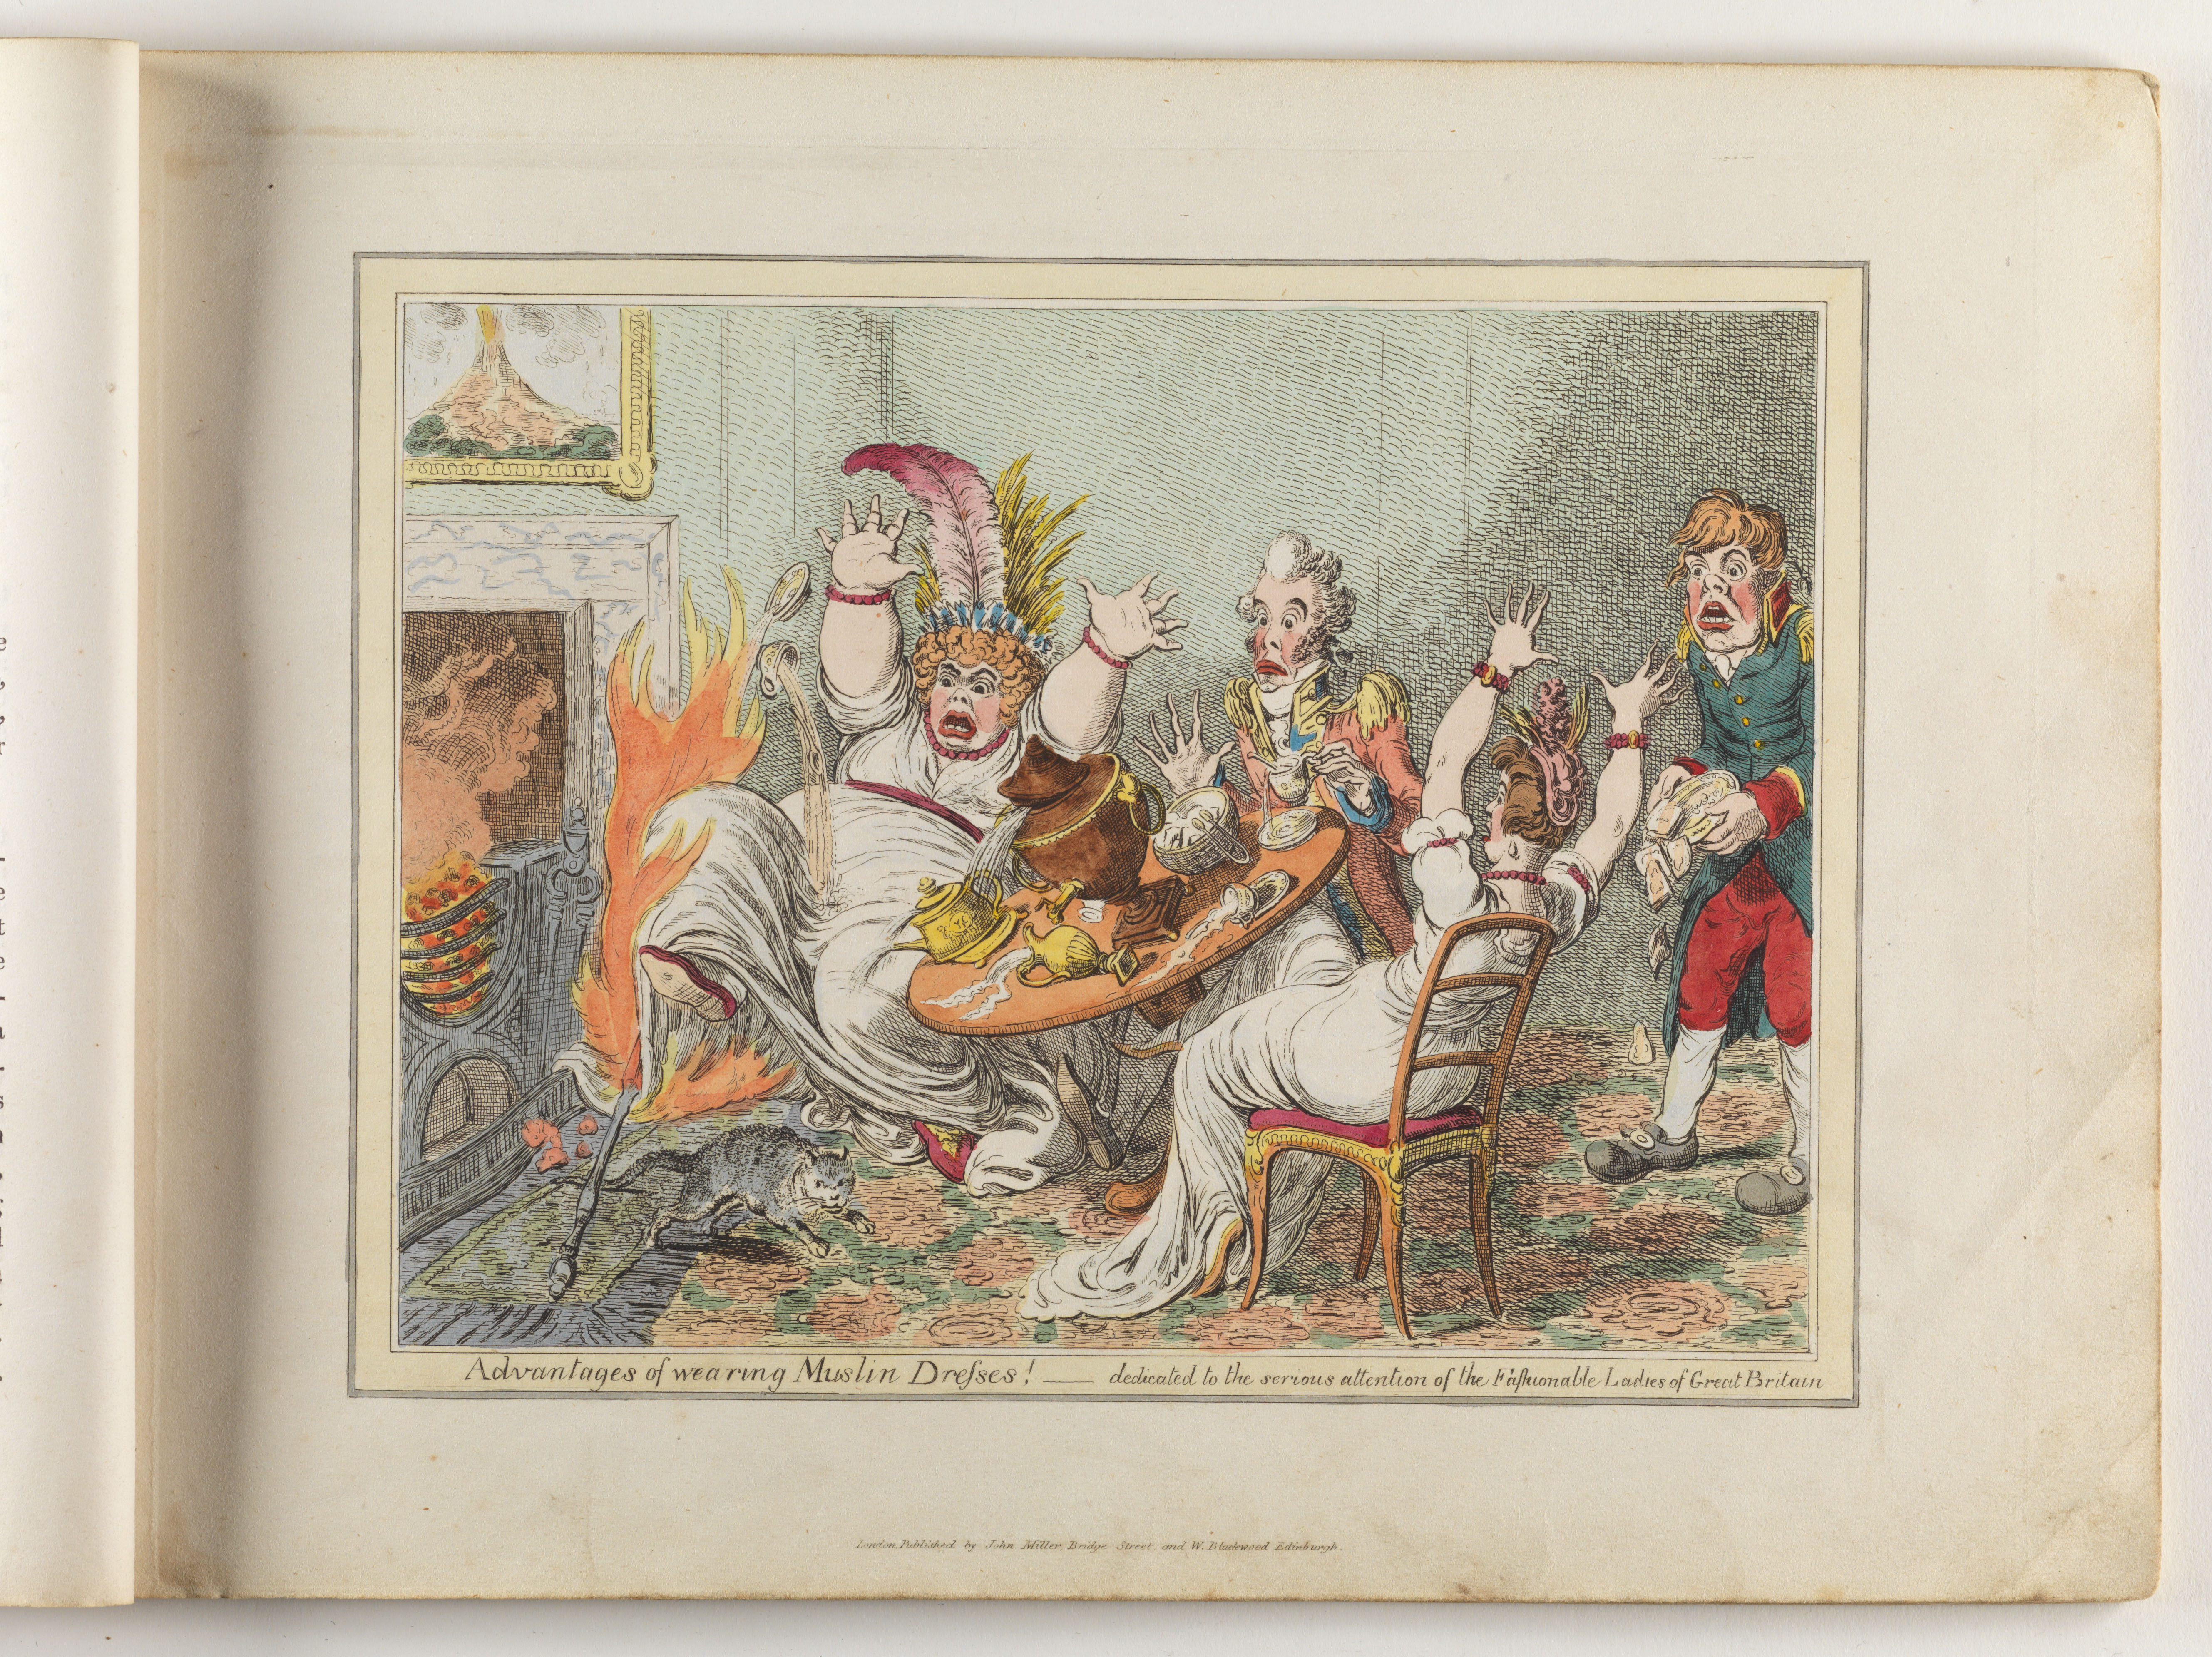 Selection 1: The caricatures of James Gillray